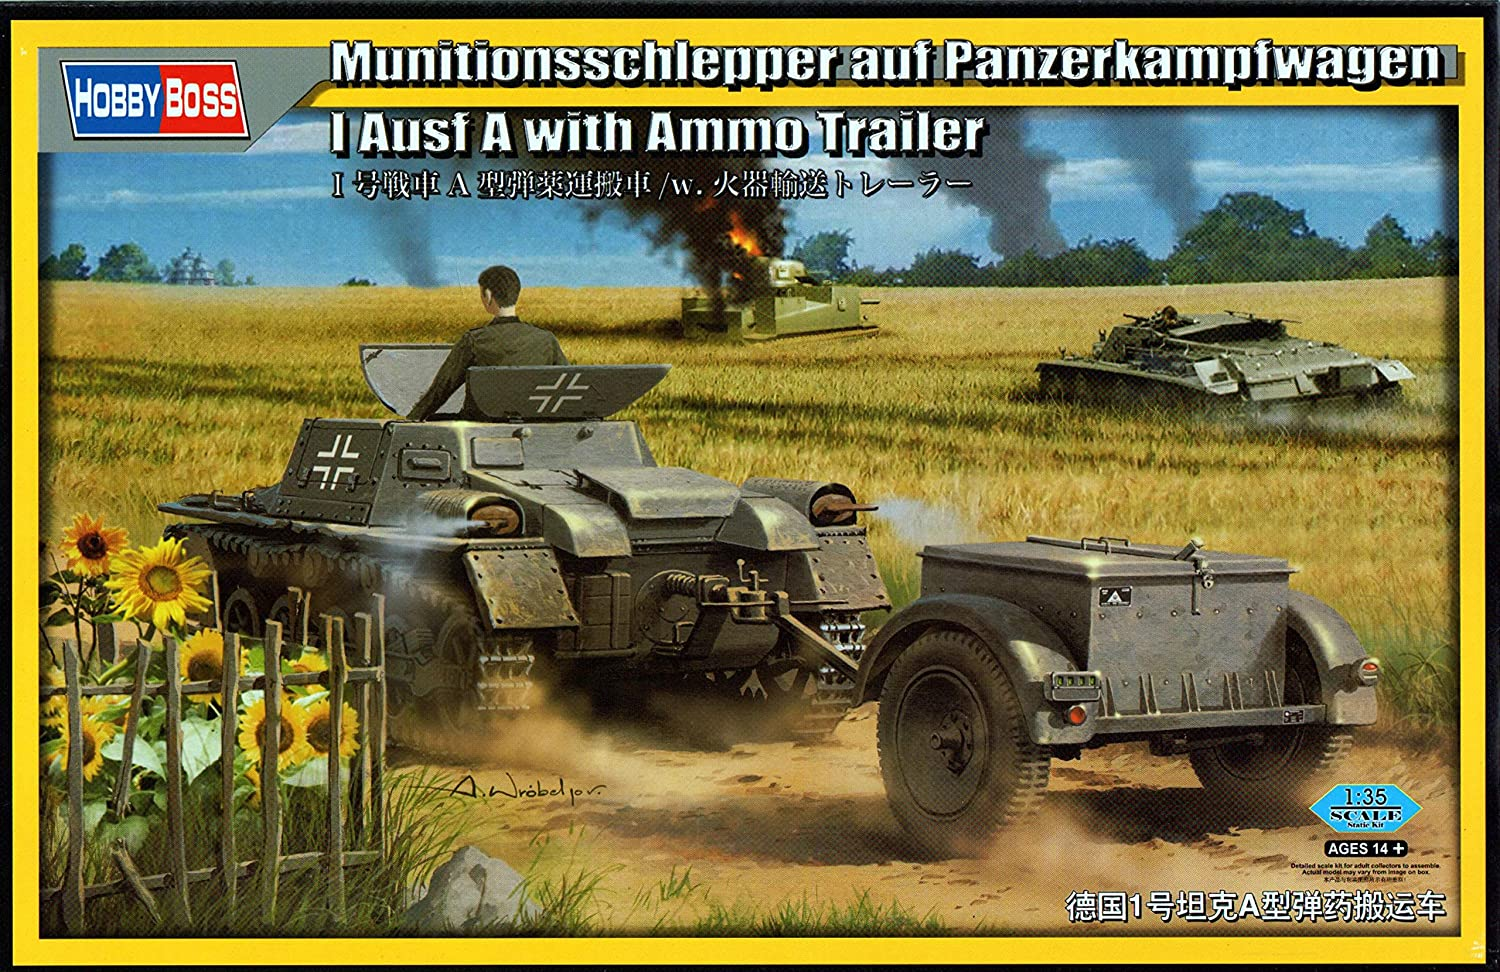 Hobbyboss 80146 1 35 Scale  Munitionsschlepper auf Pzkampfwagen I Ausf A with Ammo Trailer  Plastic Model Kit